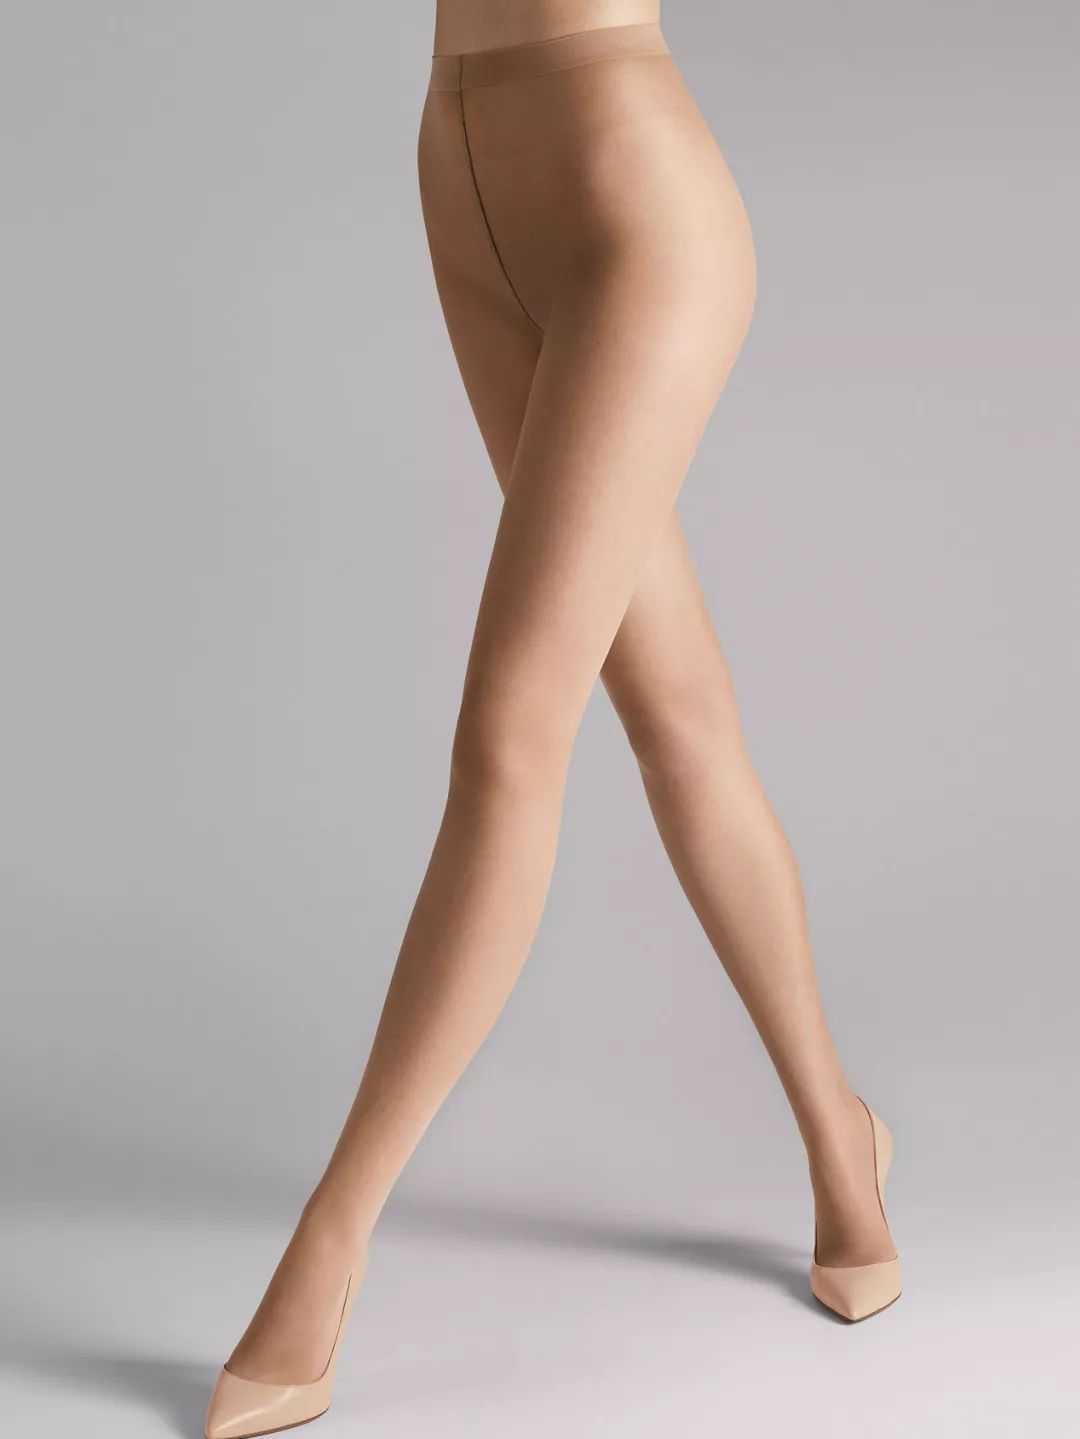 Wolford SHEER 15系列丝袜